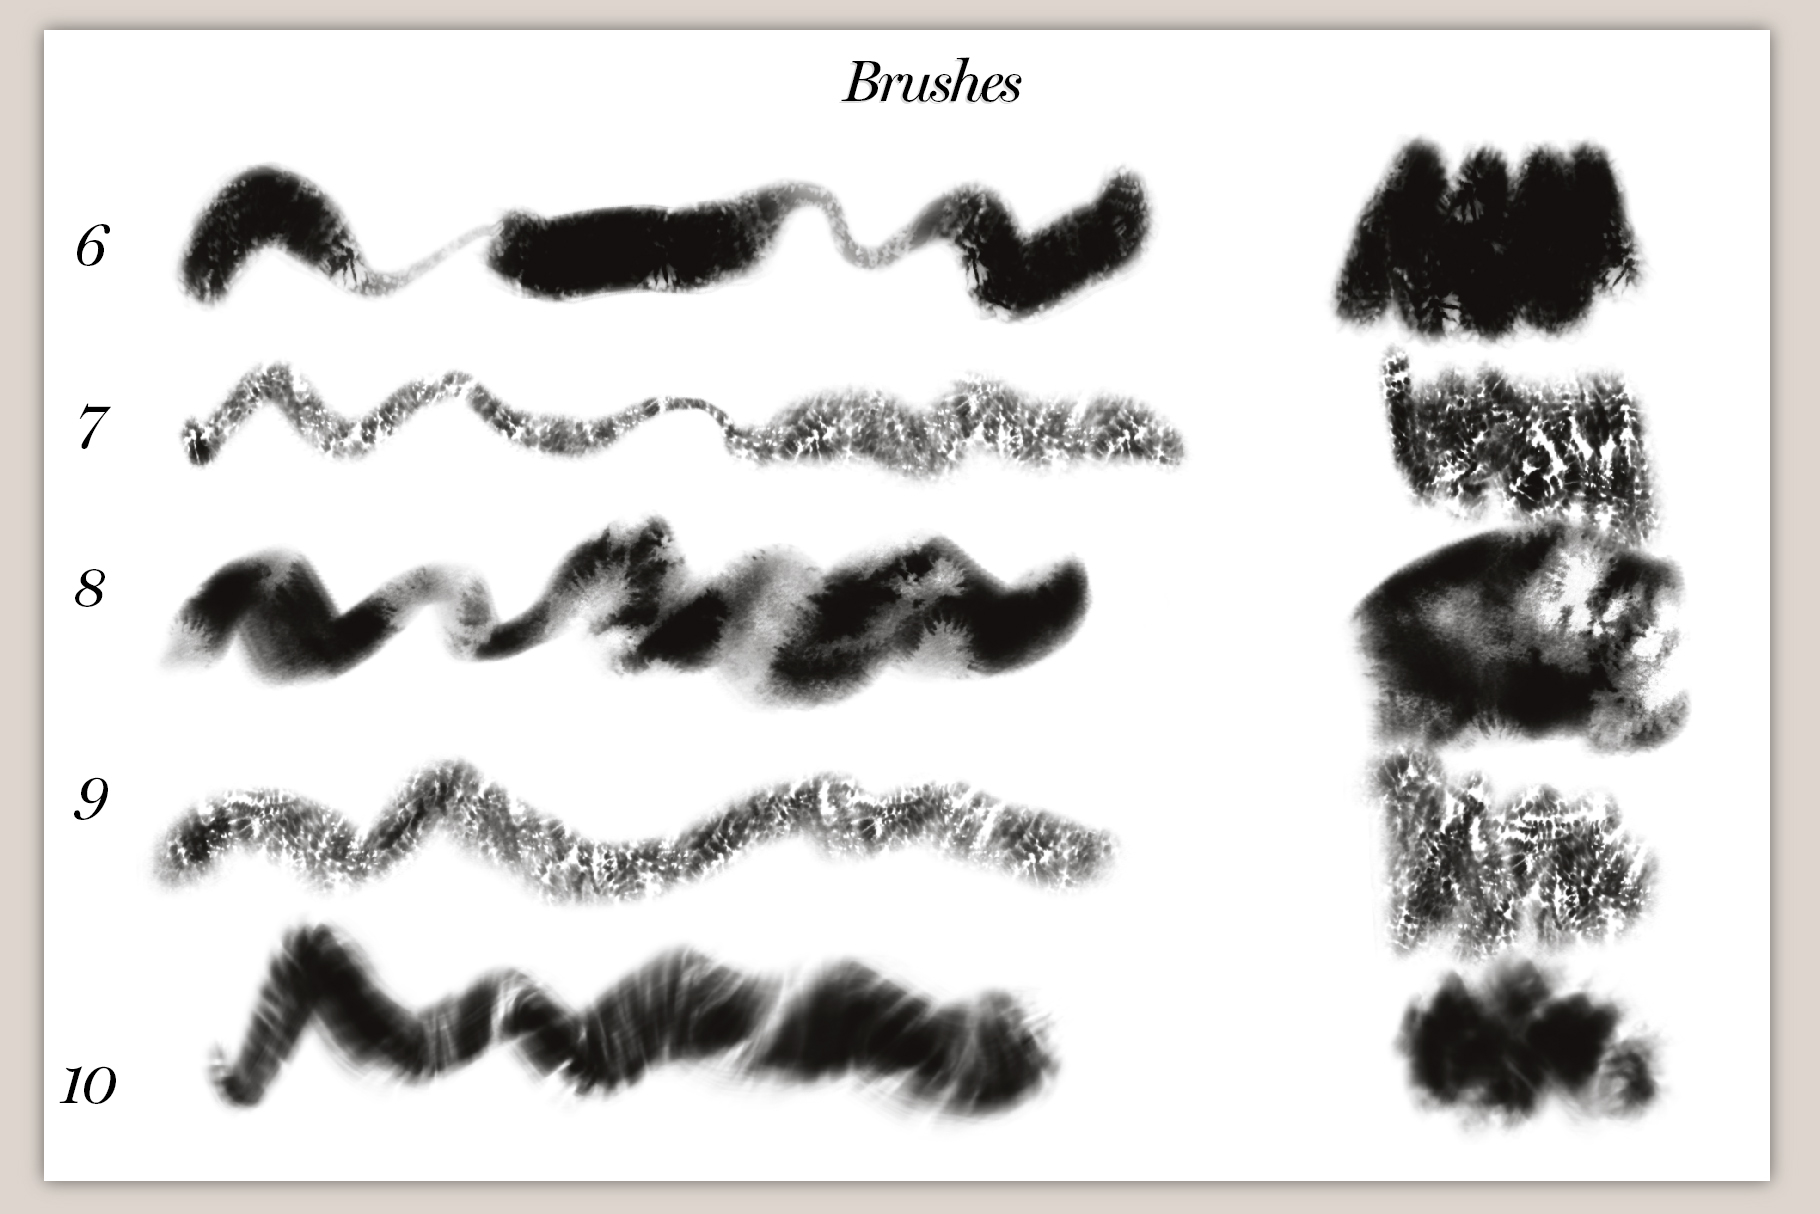 40 Artistic Painting Brushes for Procreate example image 4